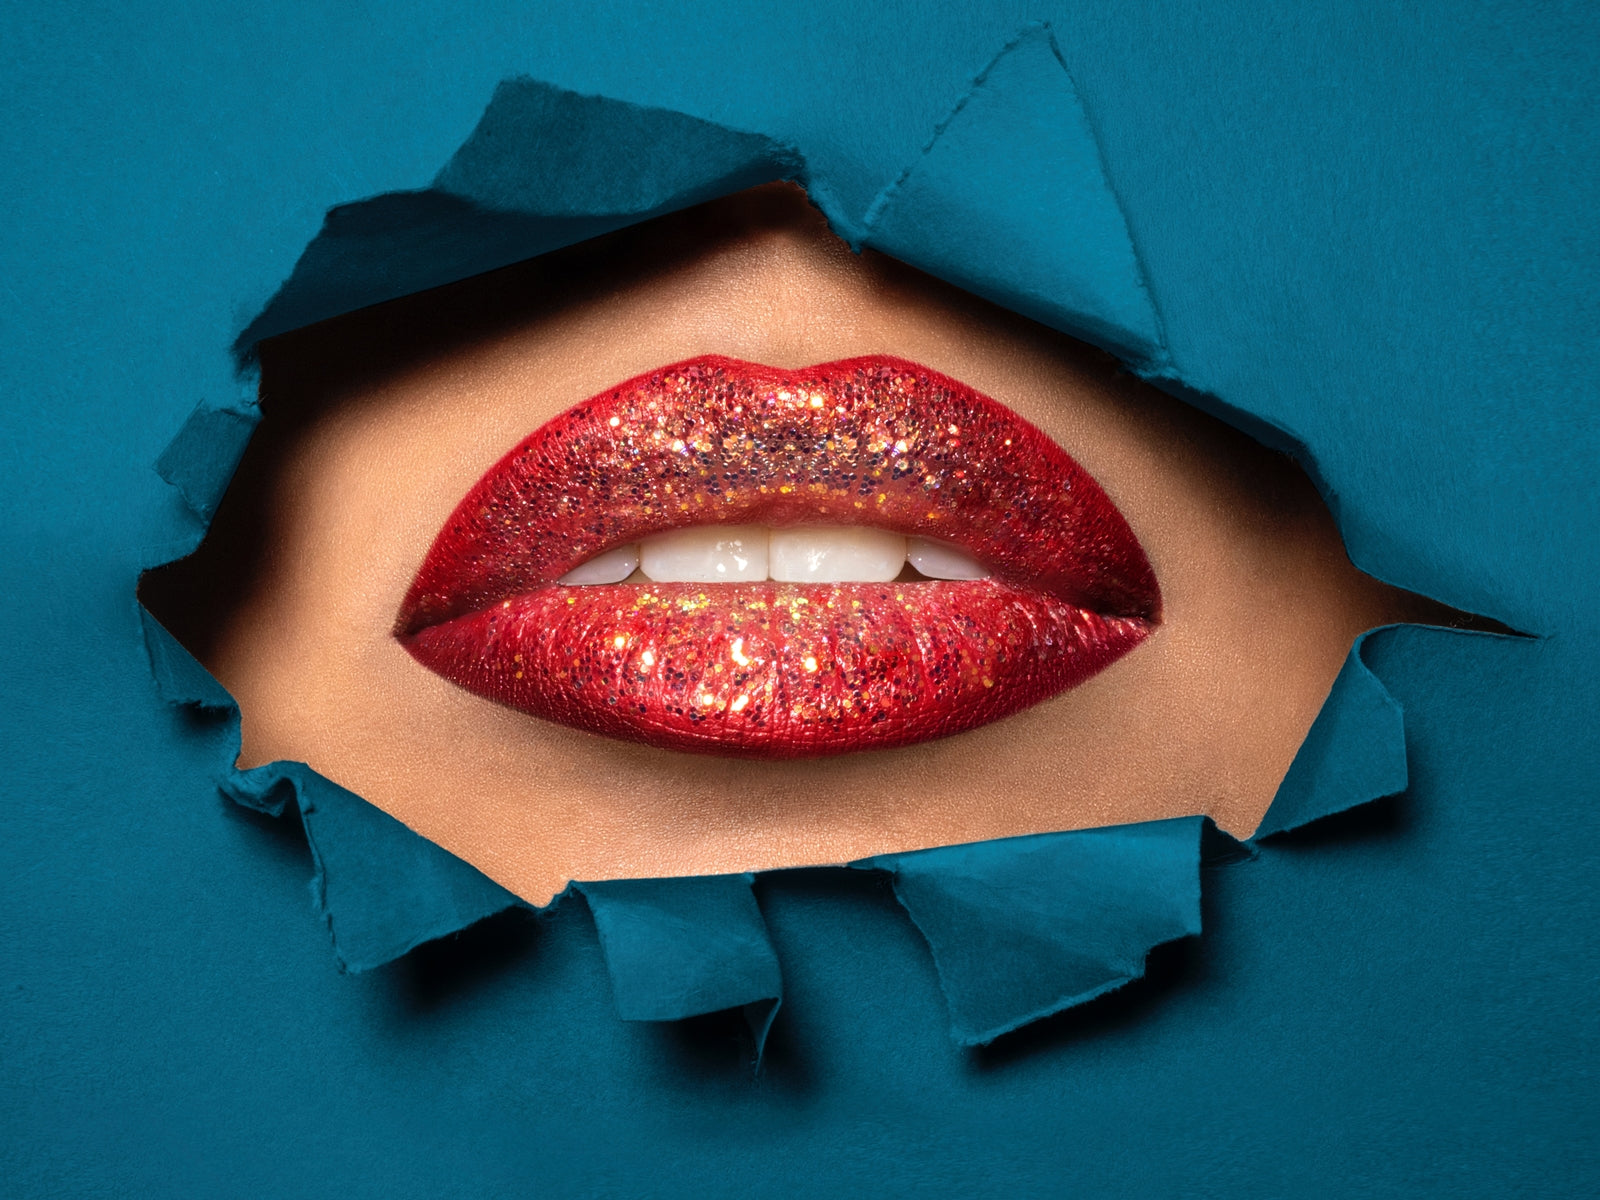 Lips with glitter lipstick on blue background, for AutoBrush